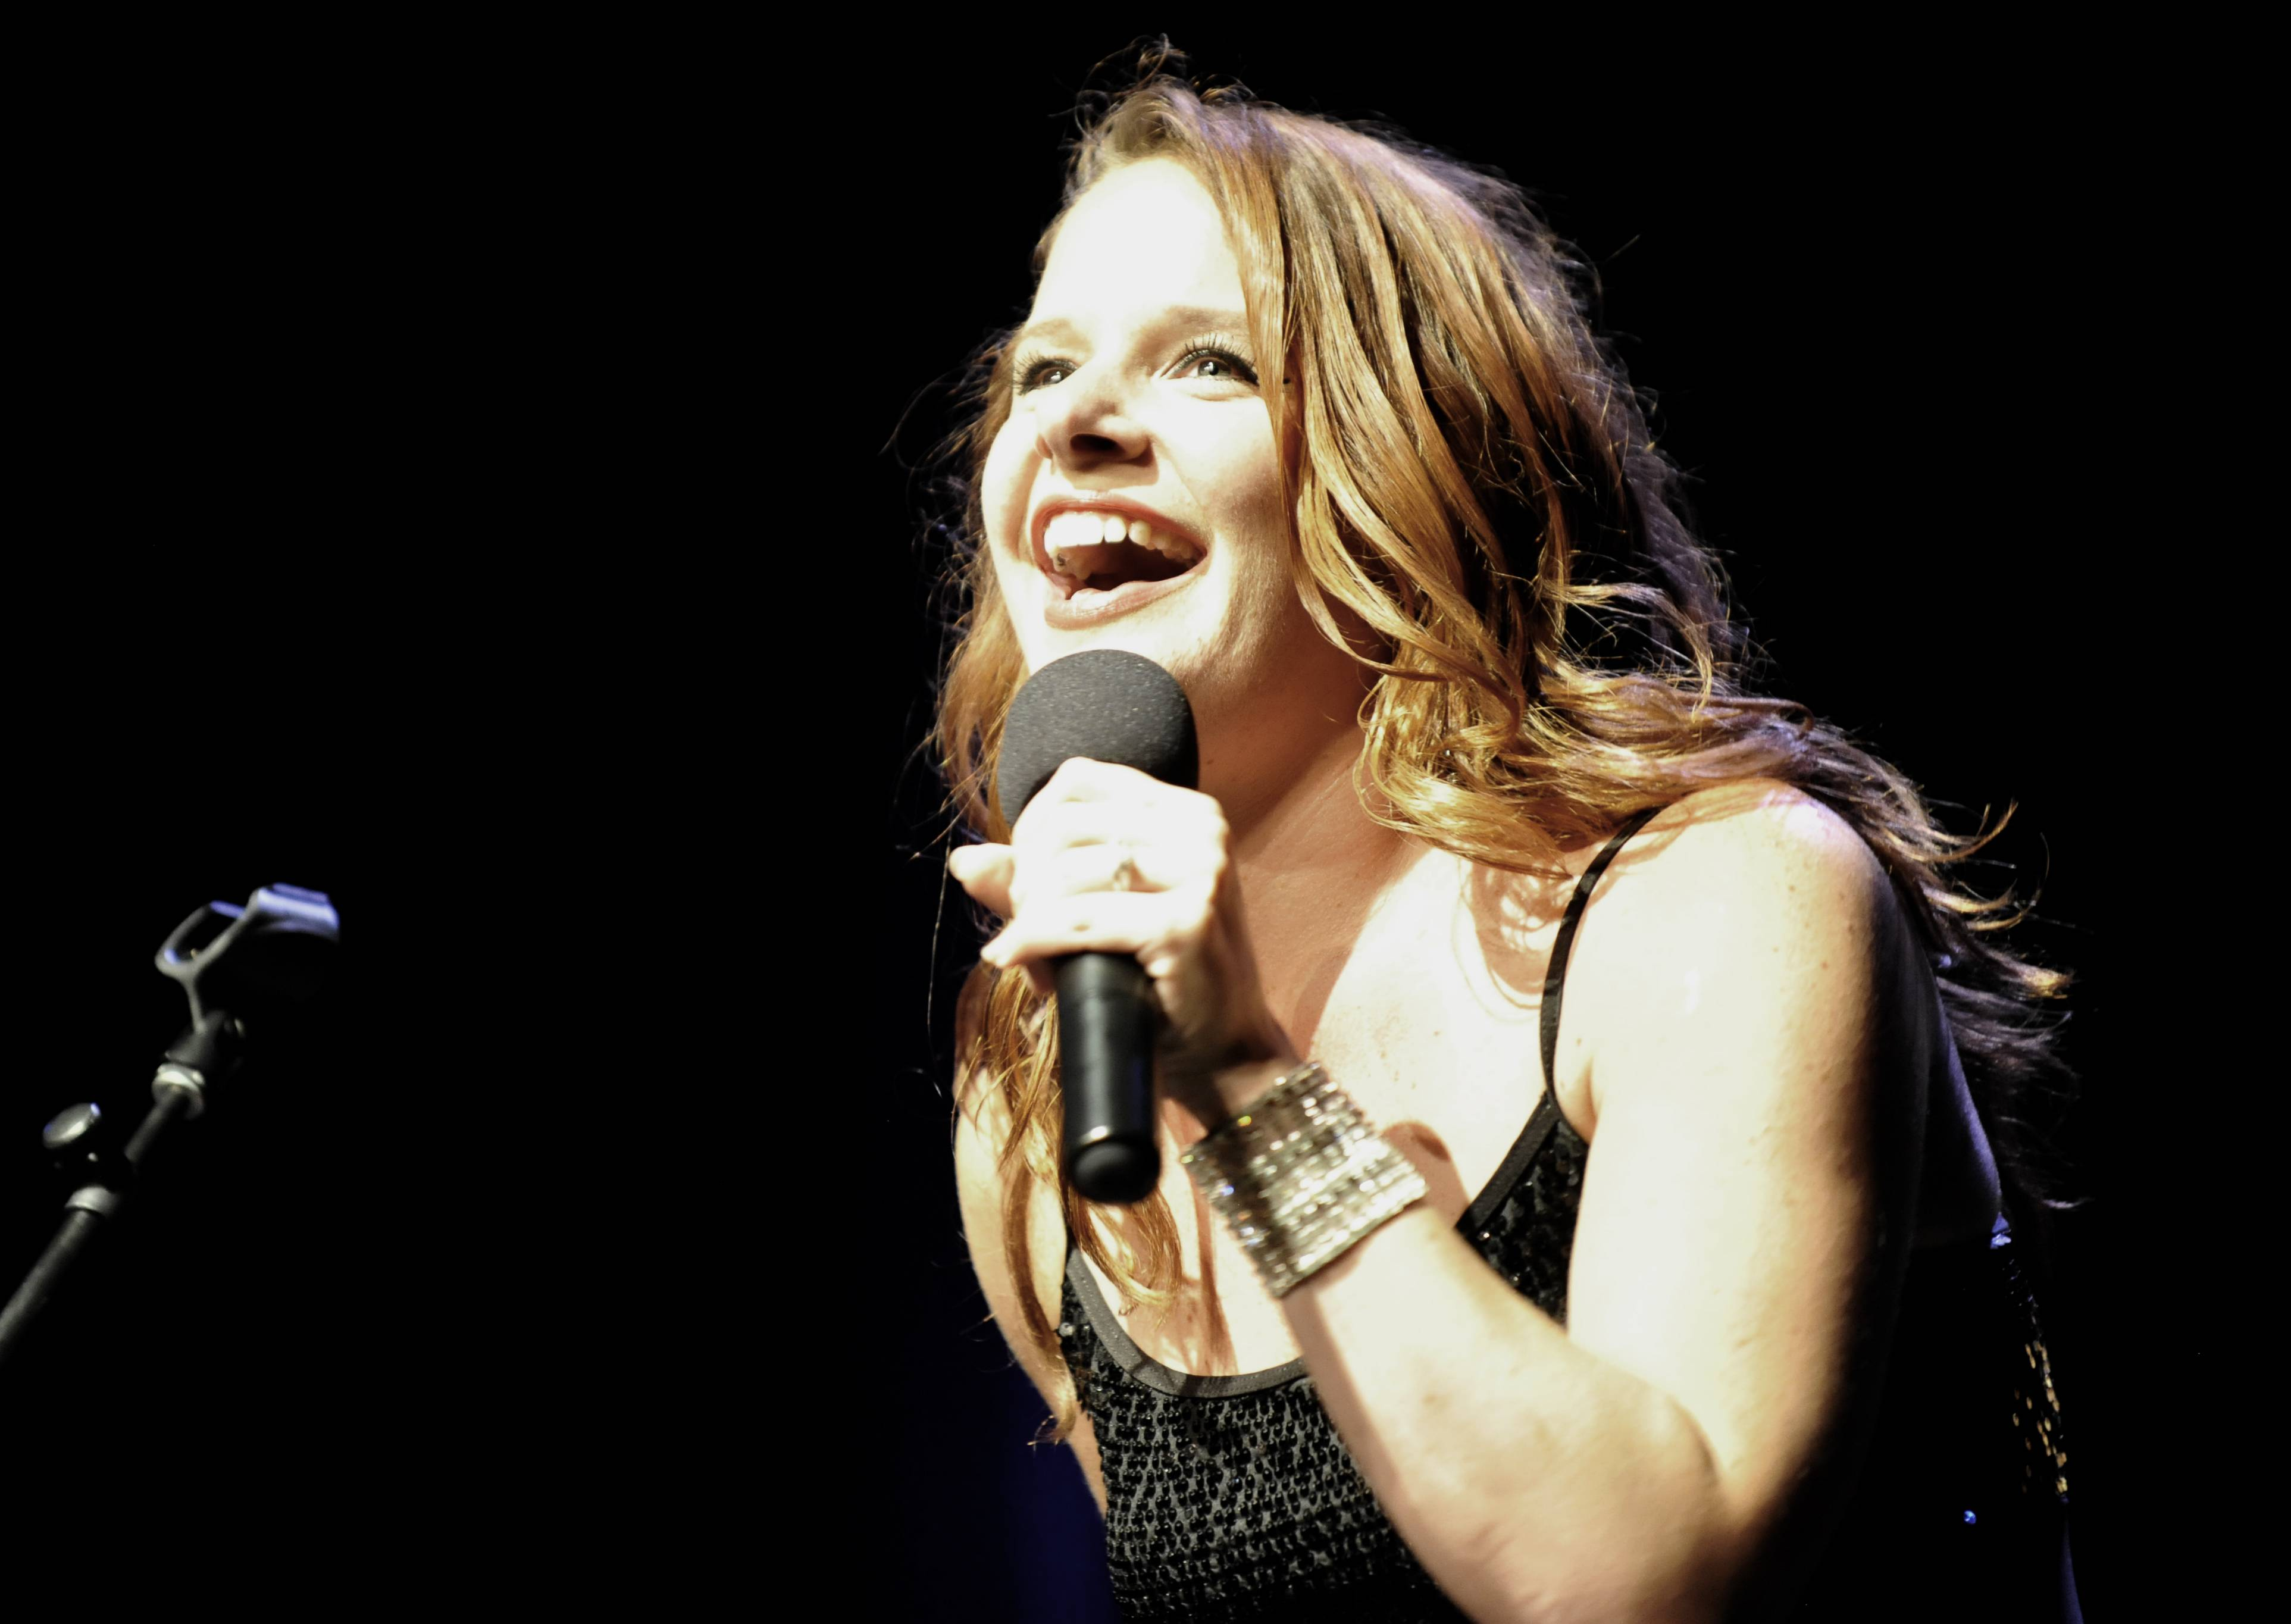 Rachel McPheeters performs at the Suburban Chicago's Got Talent top 15 competition at Prairie Center for the Arts in Schaumburg on Sunday.